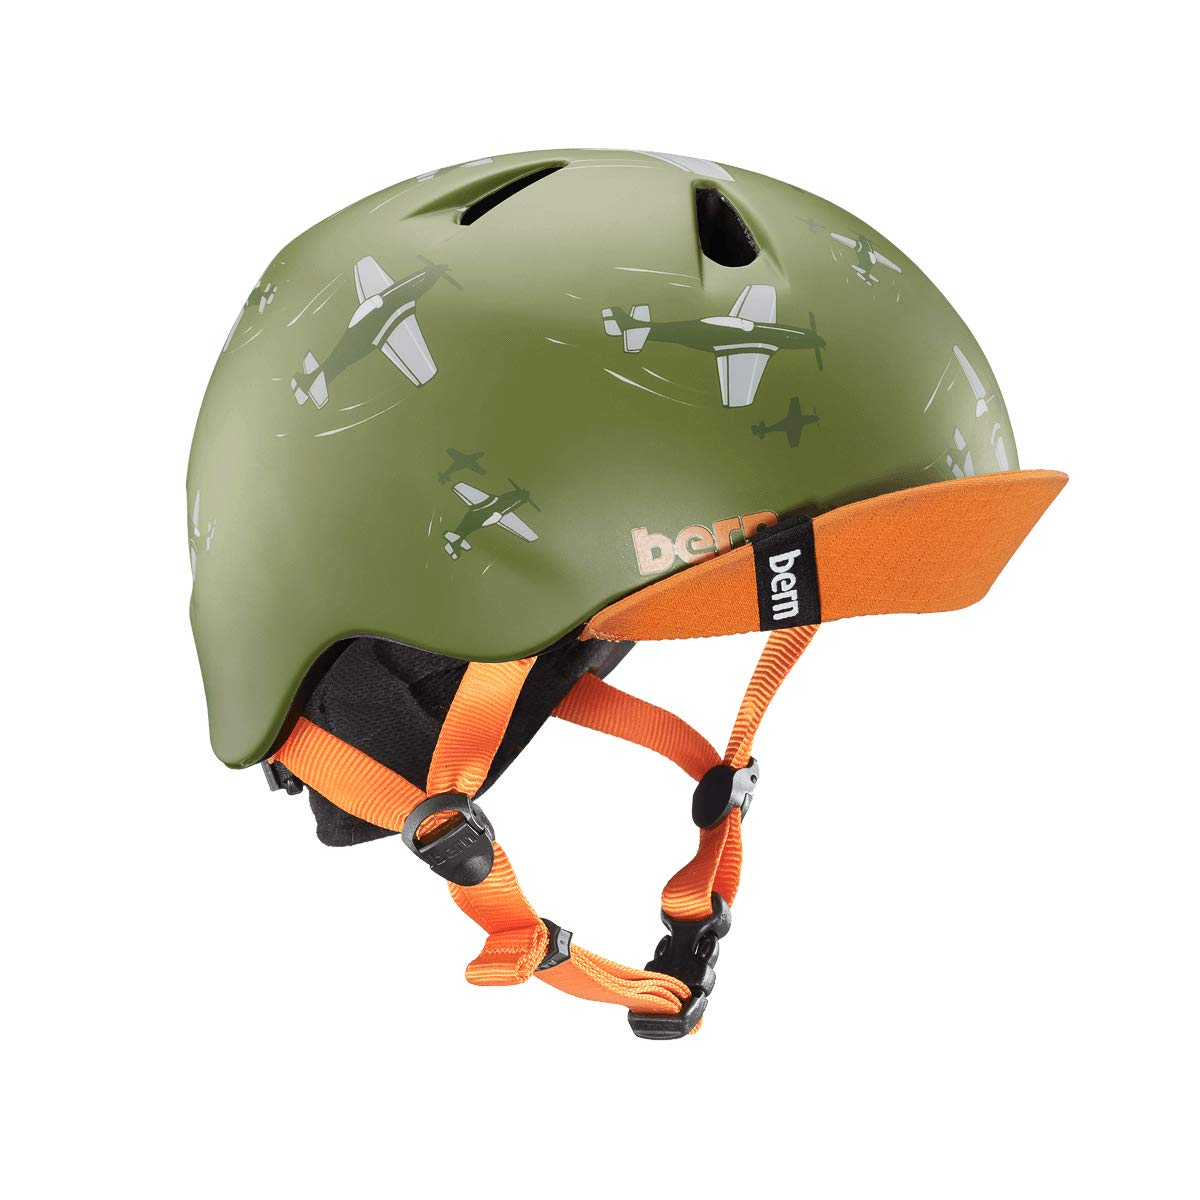 Bern Unlimited Nino Helmet w/ Flip Visor (Matte Green Dogfight, Small/Medium) by Bern (Image #1)